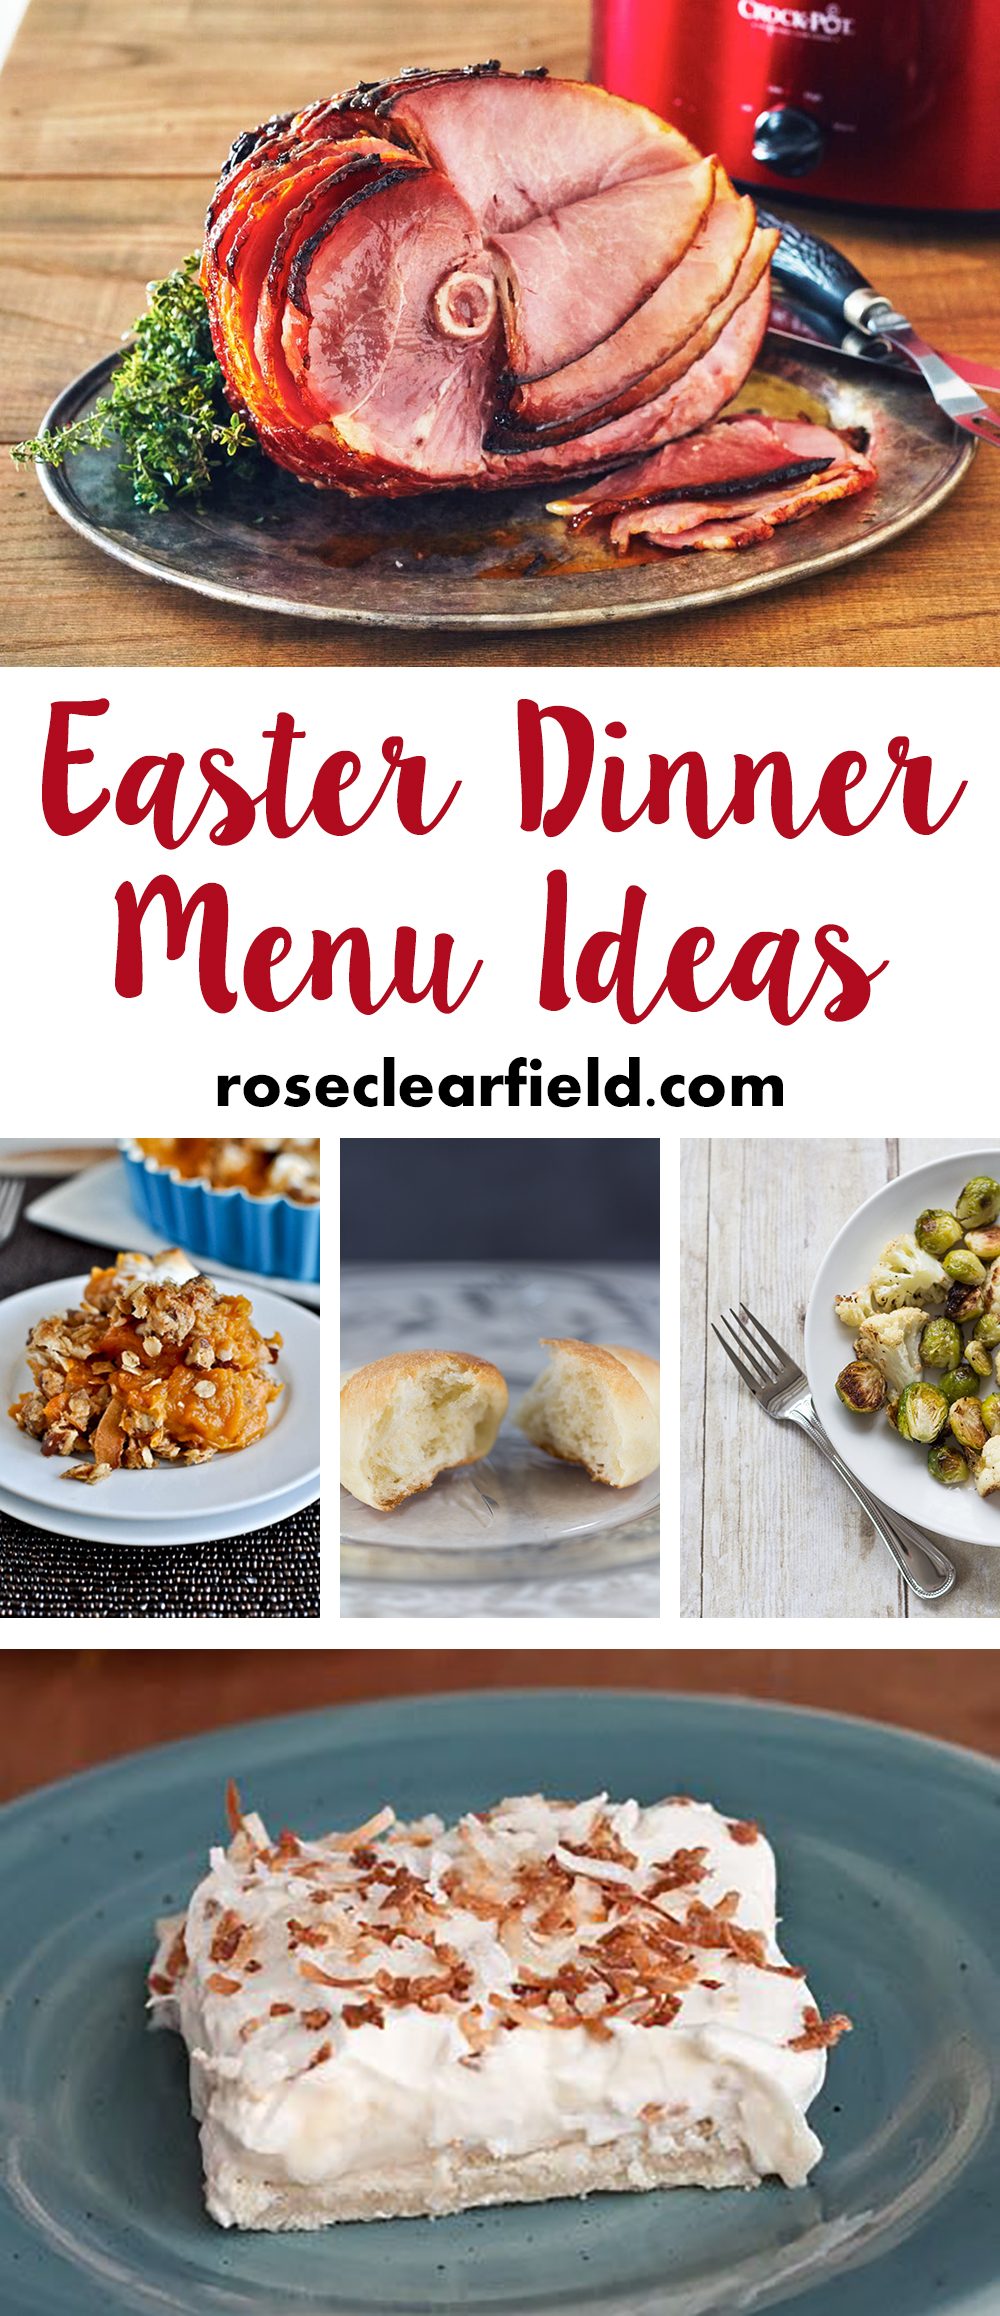 Easter Dinner Menu Ideas | https://www.roseclearfield.com